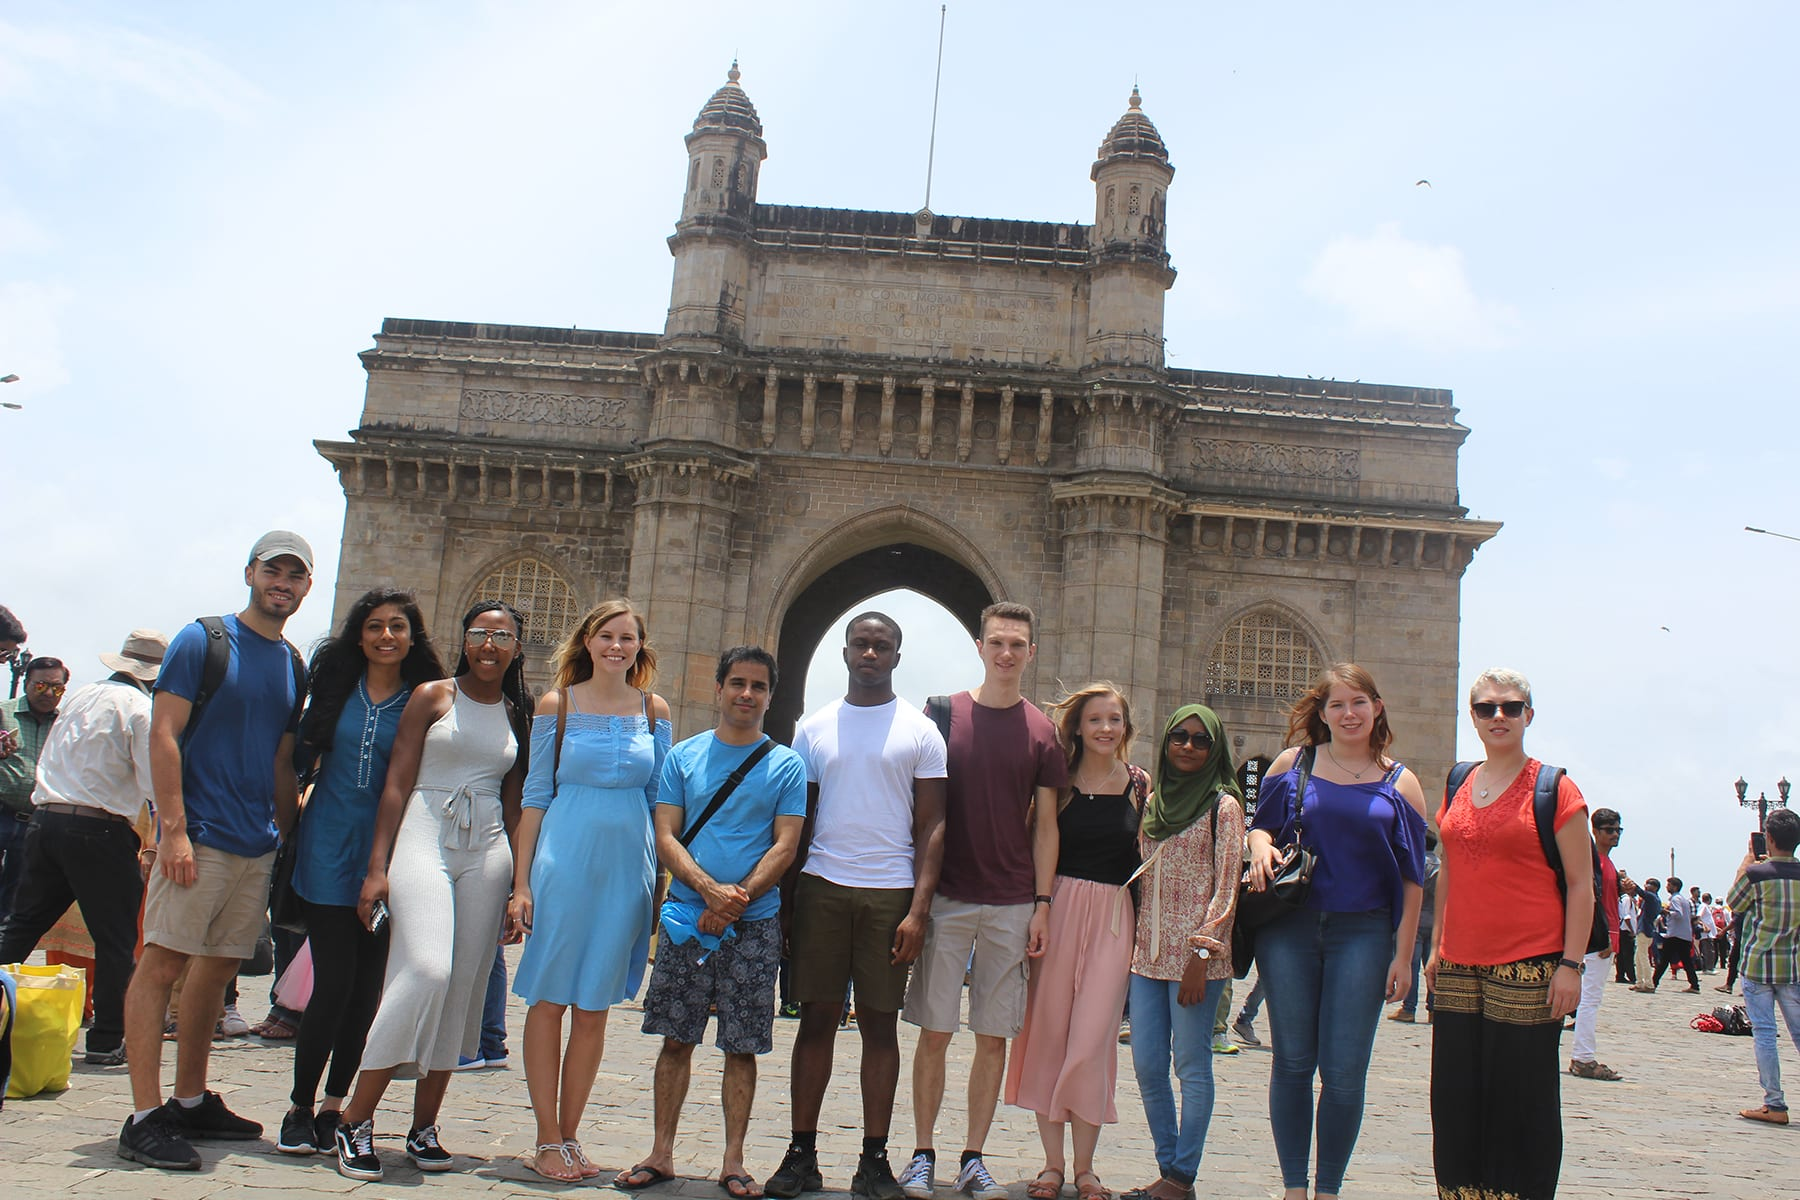 University of Southampton students are engaged in Spark India 2017 Fellowship Programme in suburban Mumbai